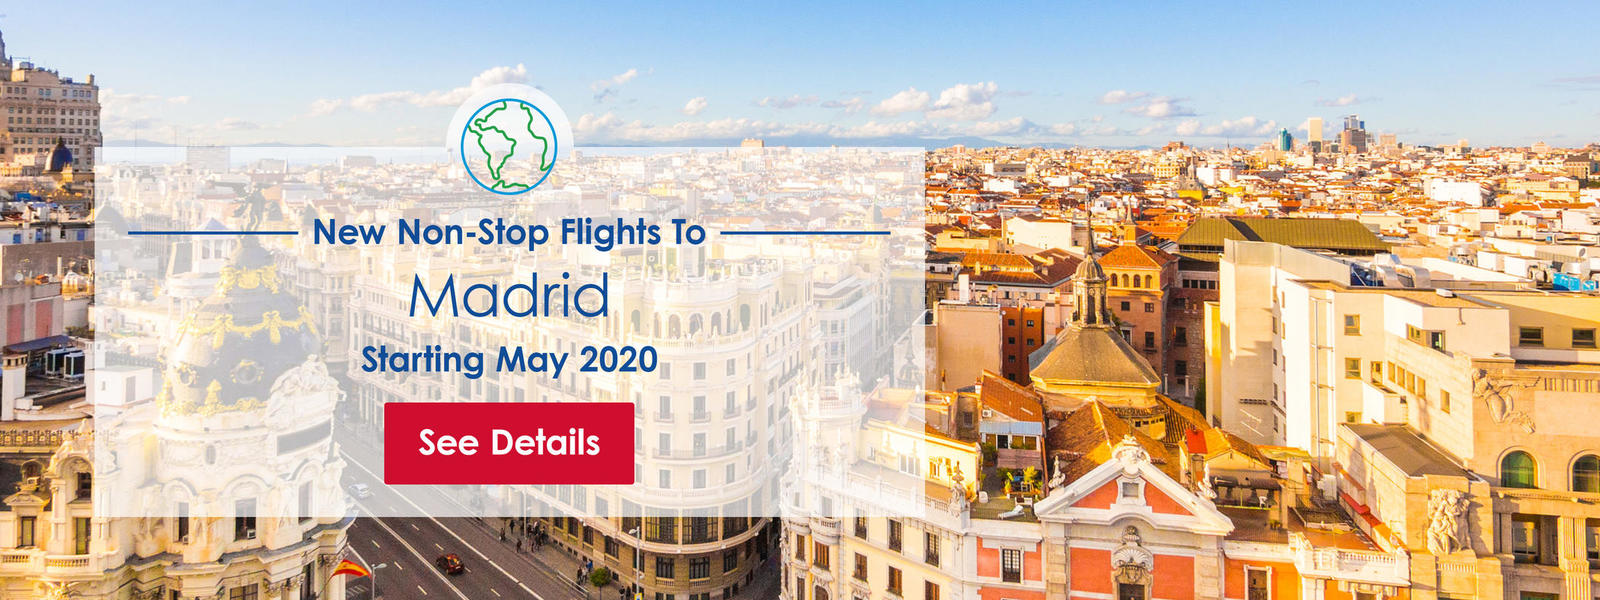 Iberia flights to Madrid, coming May 2020